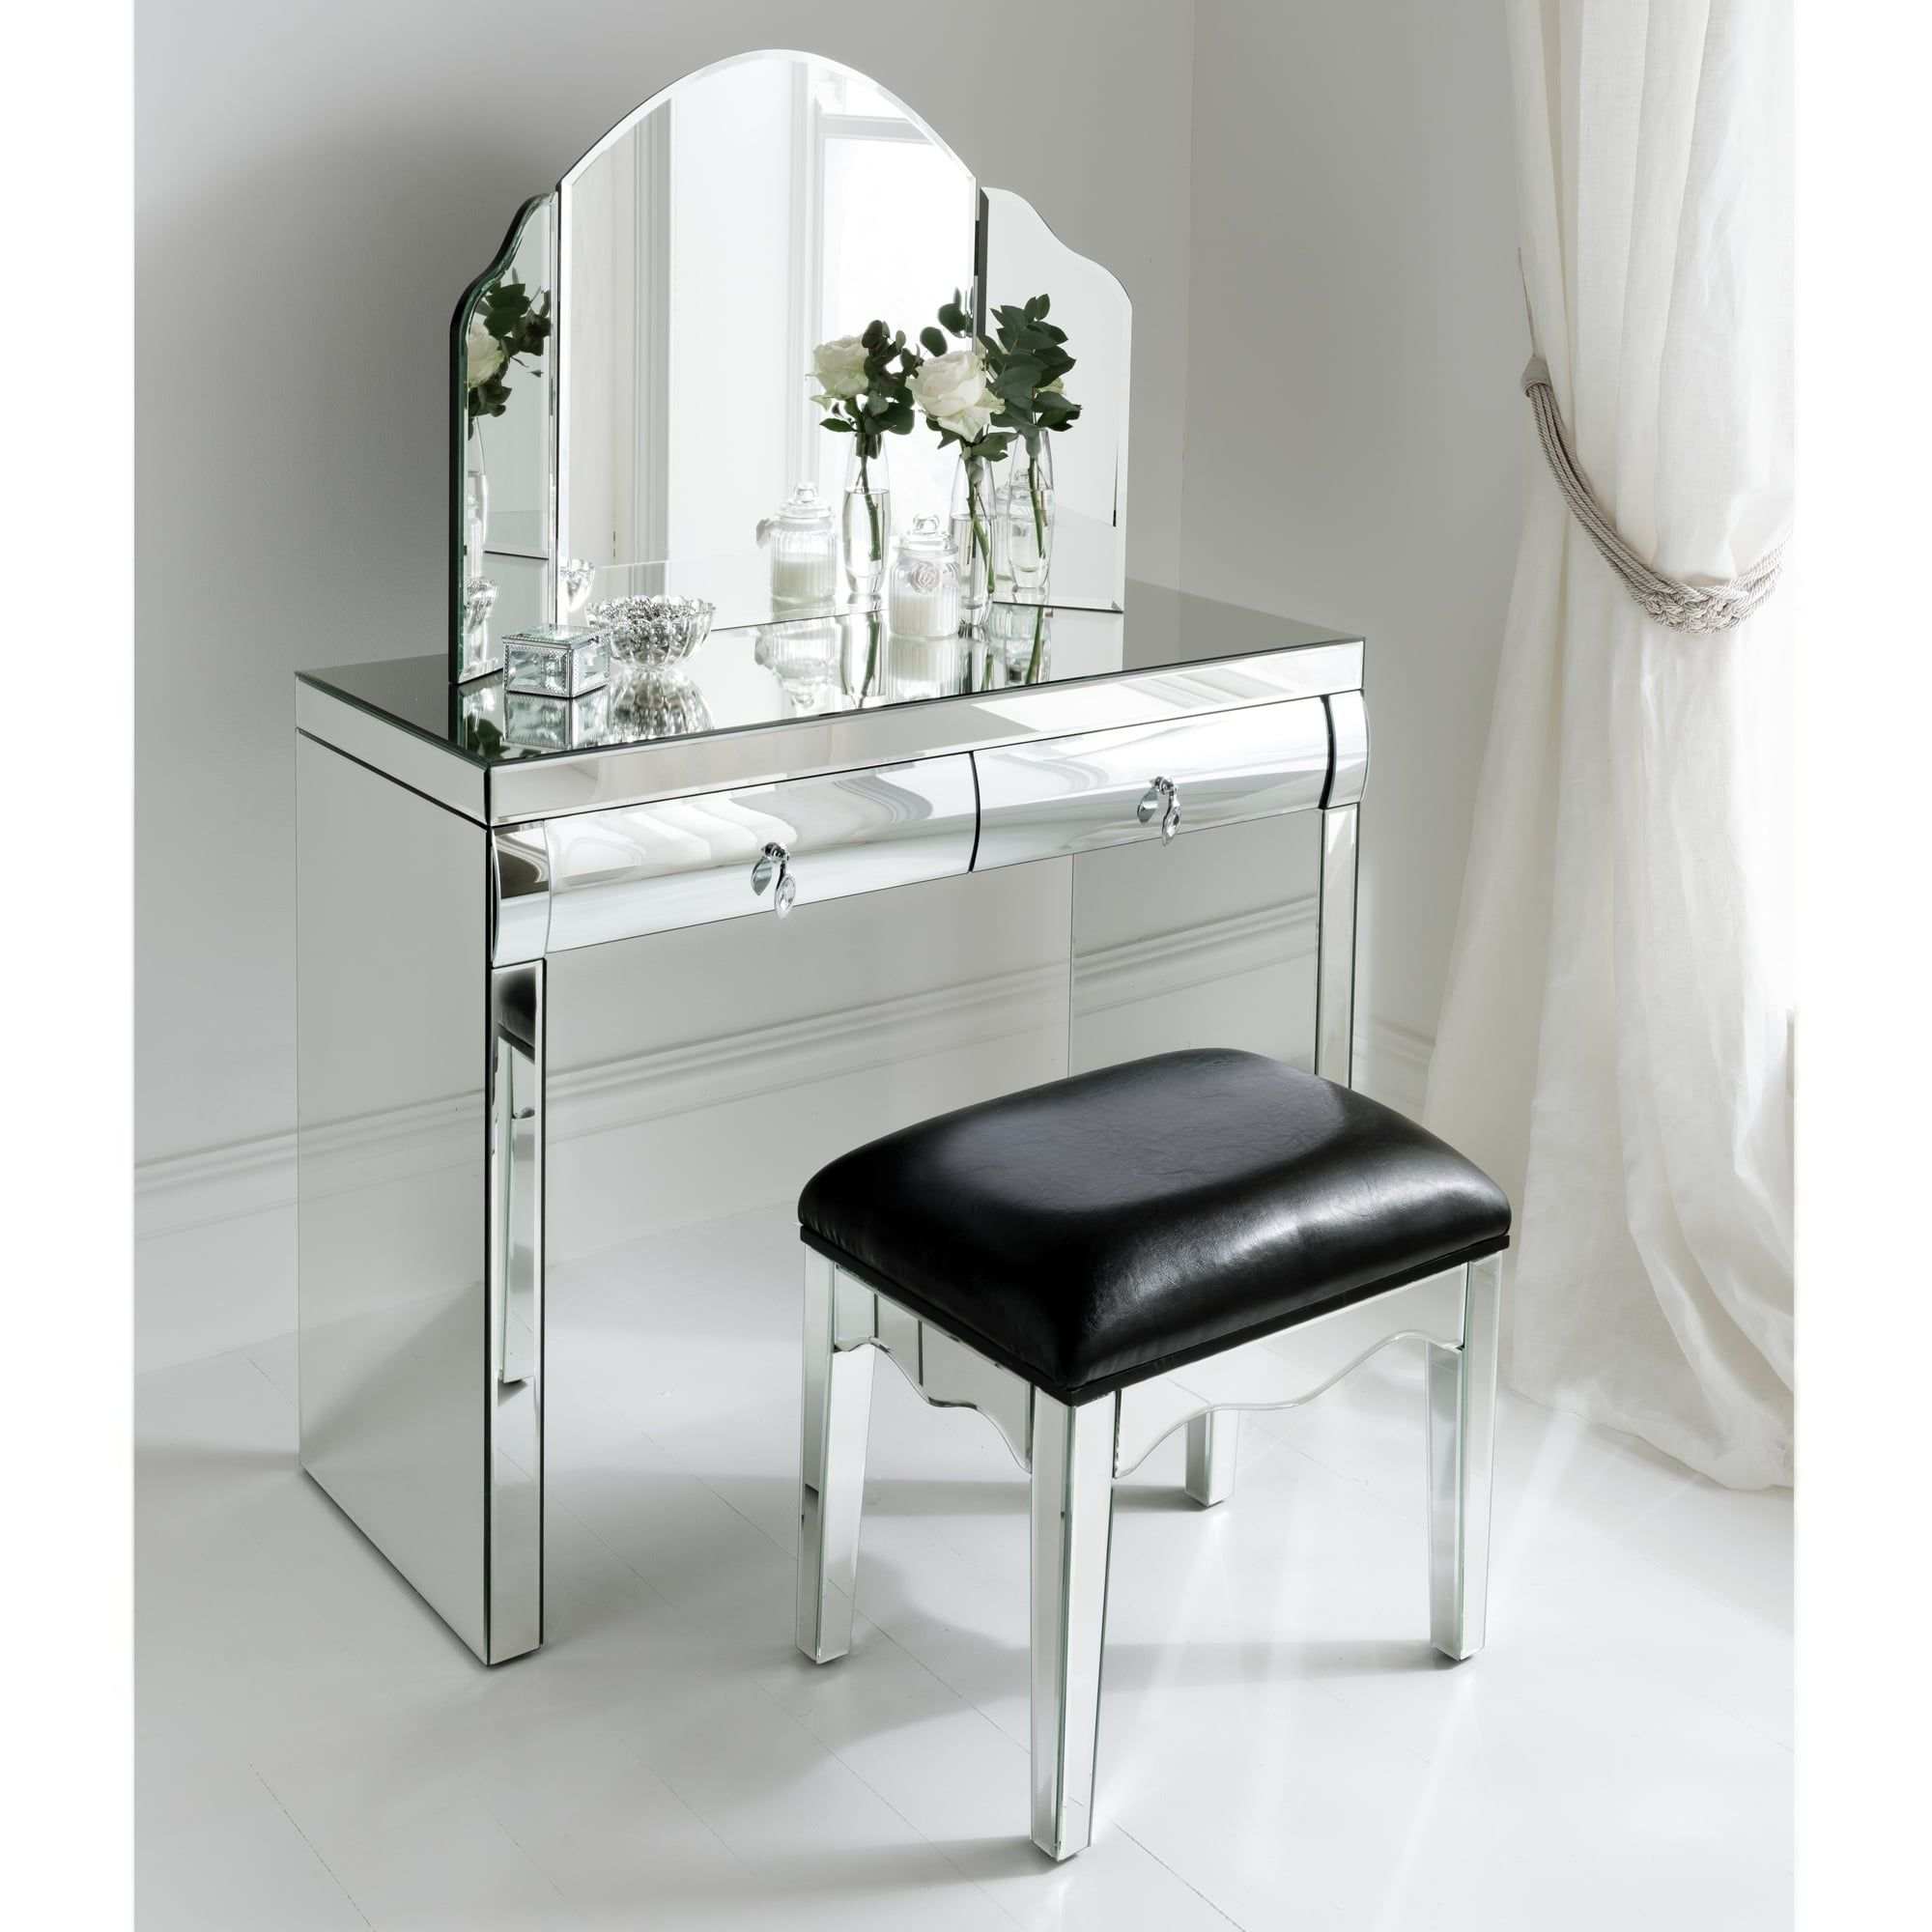 Dressing table with mirror mirrored dressing table set  lachpage  pinterest